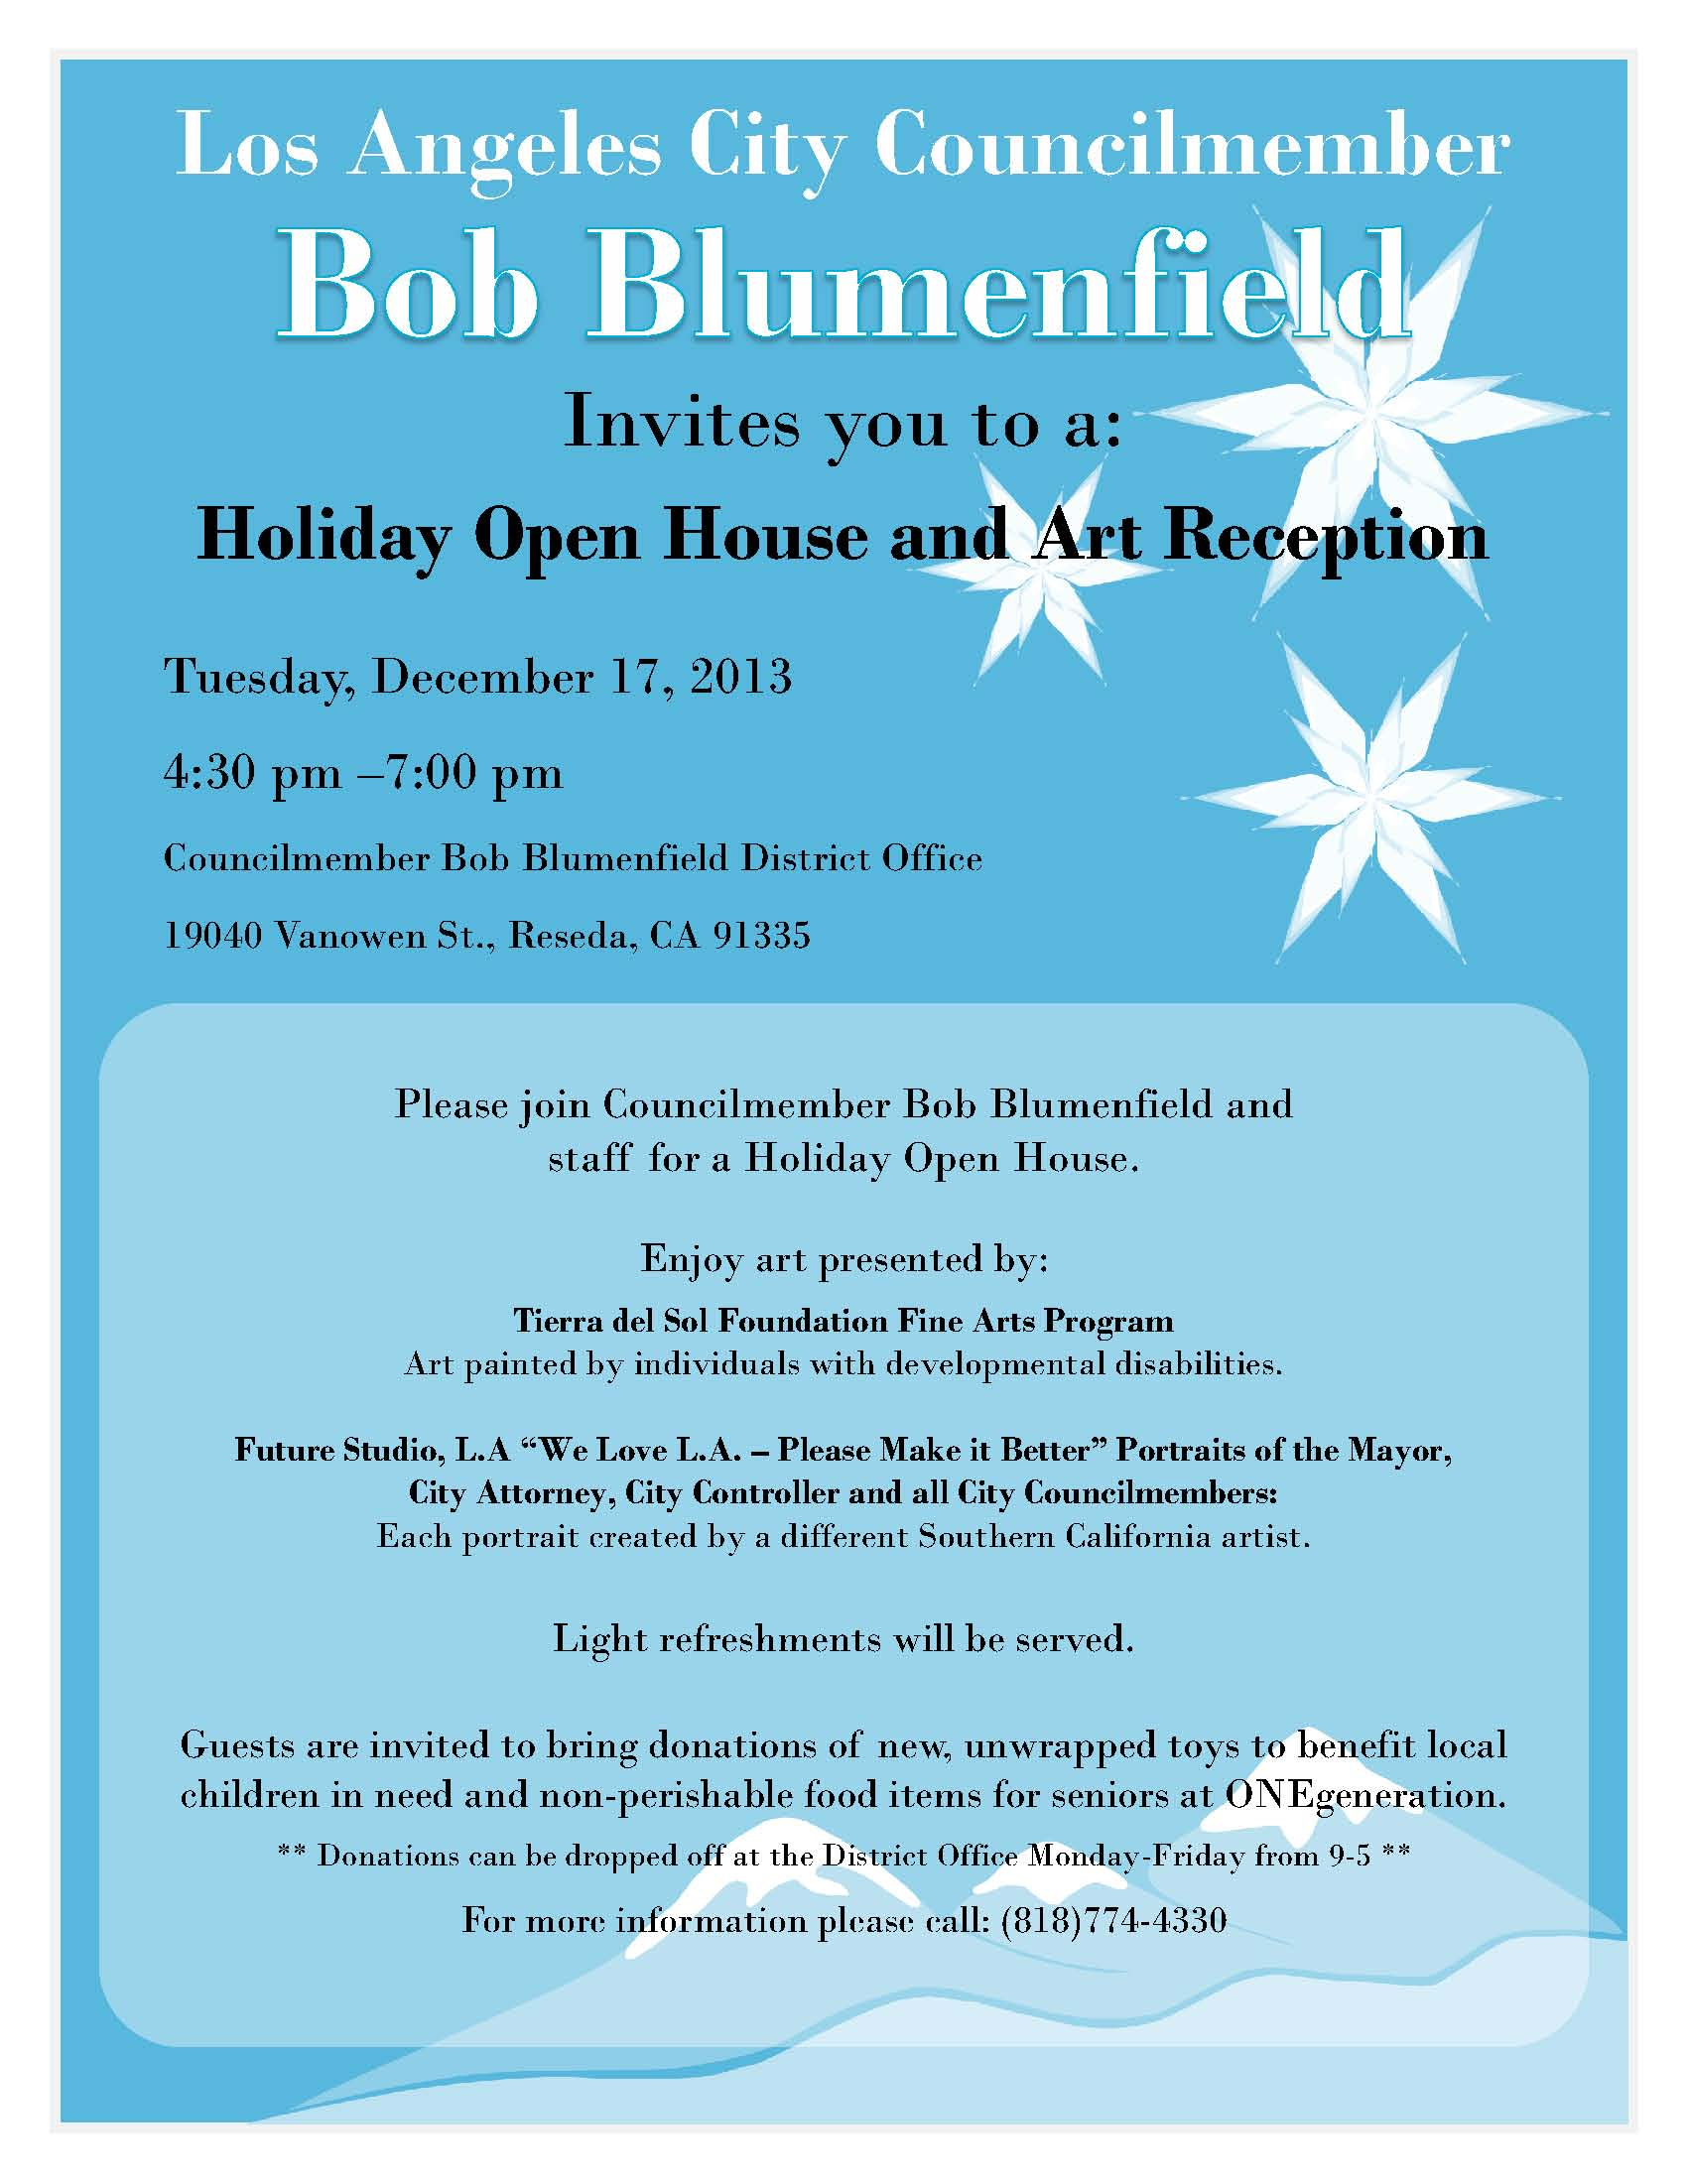 Holiday_Open_House!_(1)_(2).png